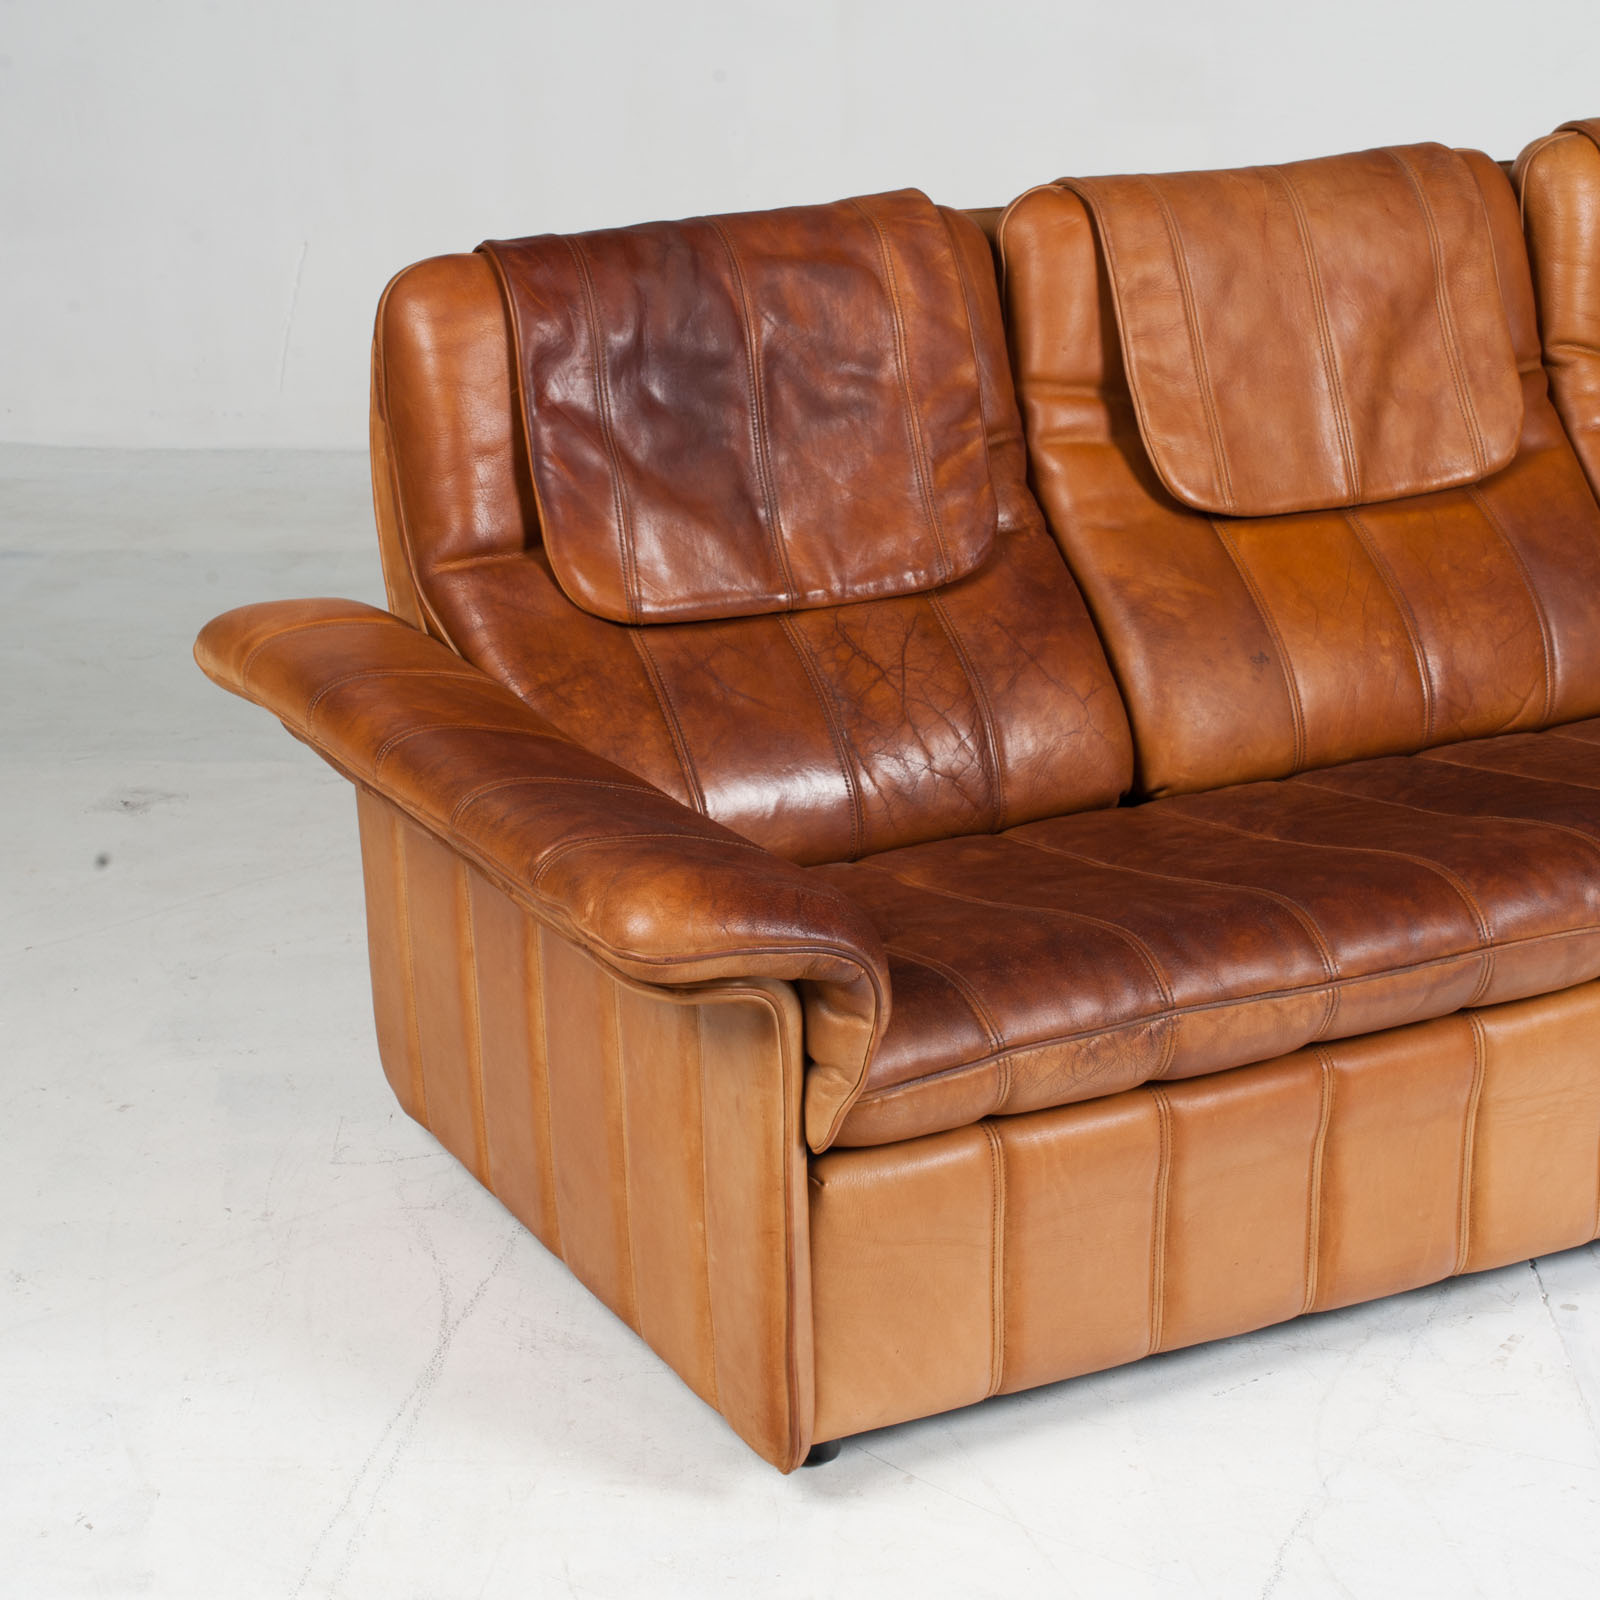 3 Seat Sofa By De Sede In Tan Leather 1970s Switzerland 03